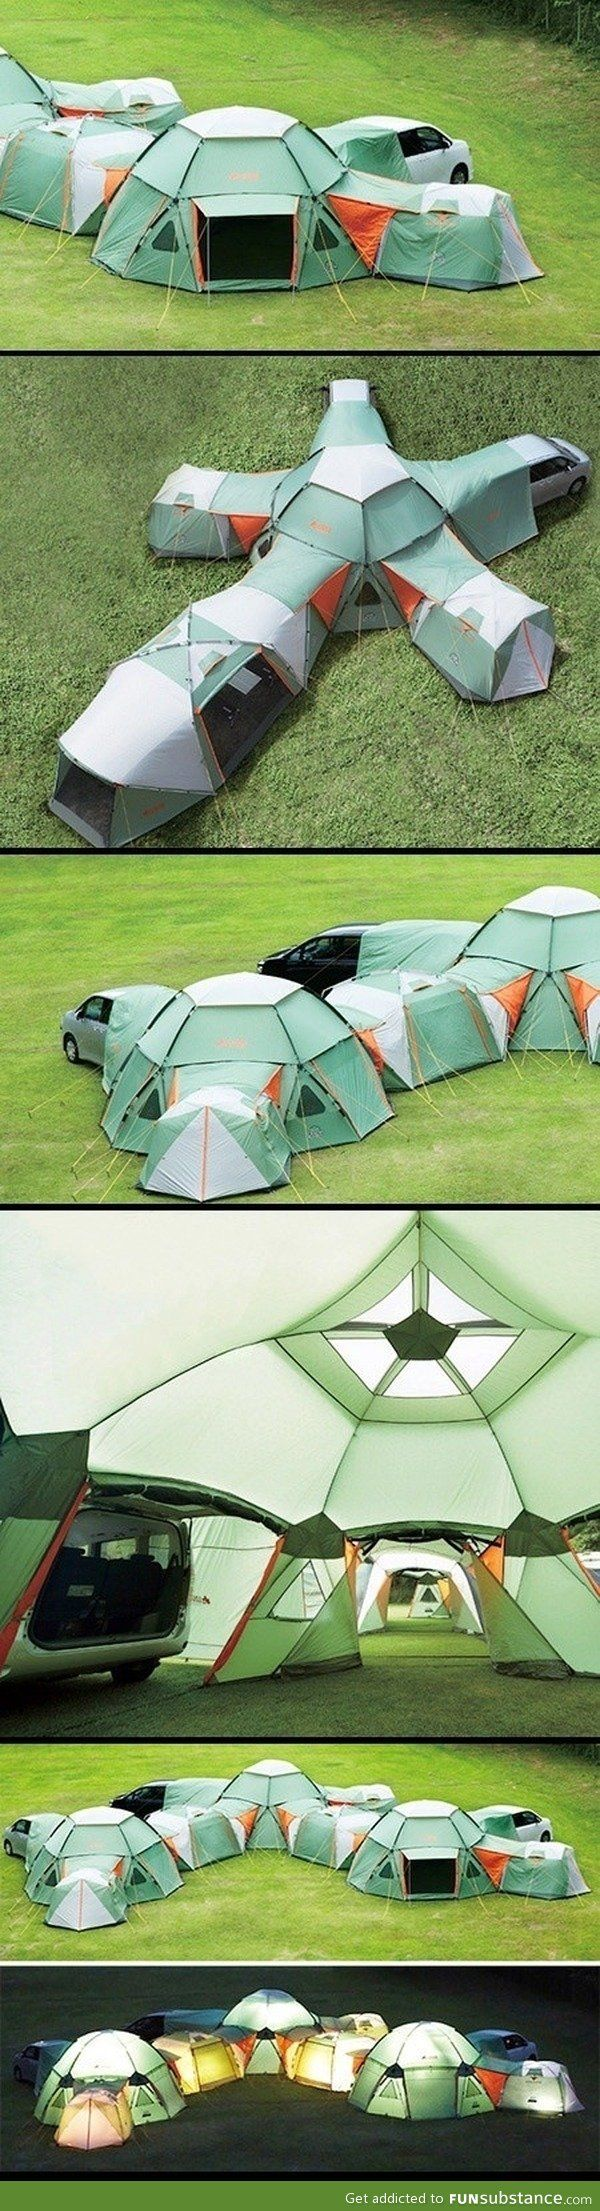 Wow - now thats a BIG tent! I wonder how ling it takes to put up. POssibly a good idea for a cafe inside?